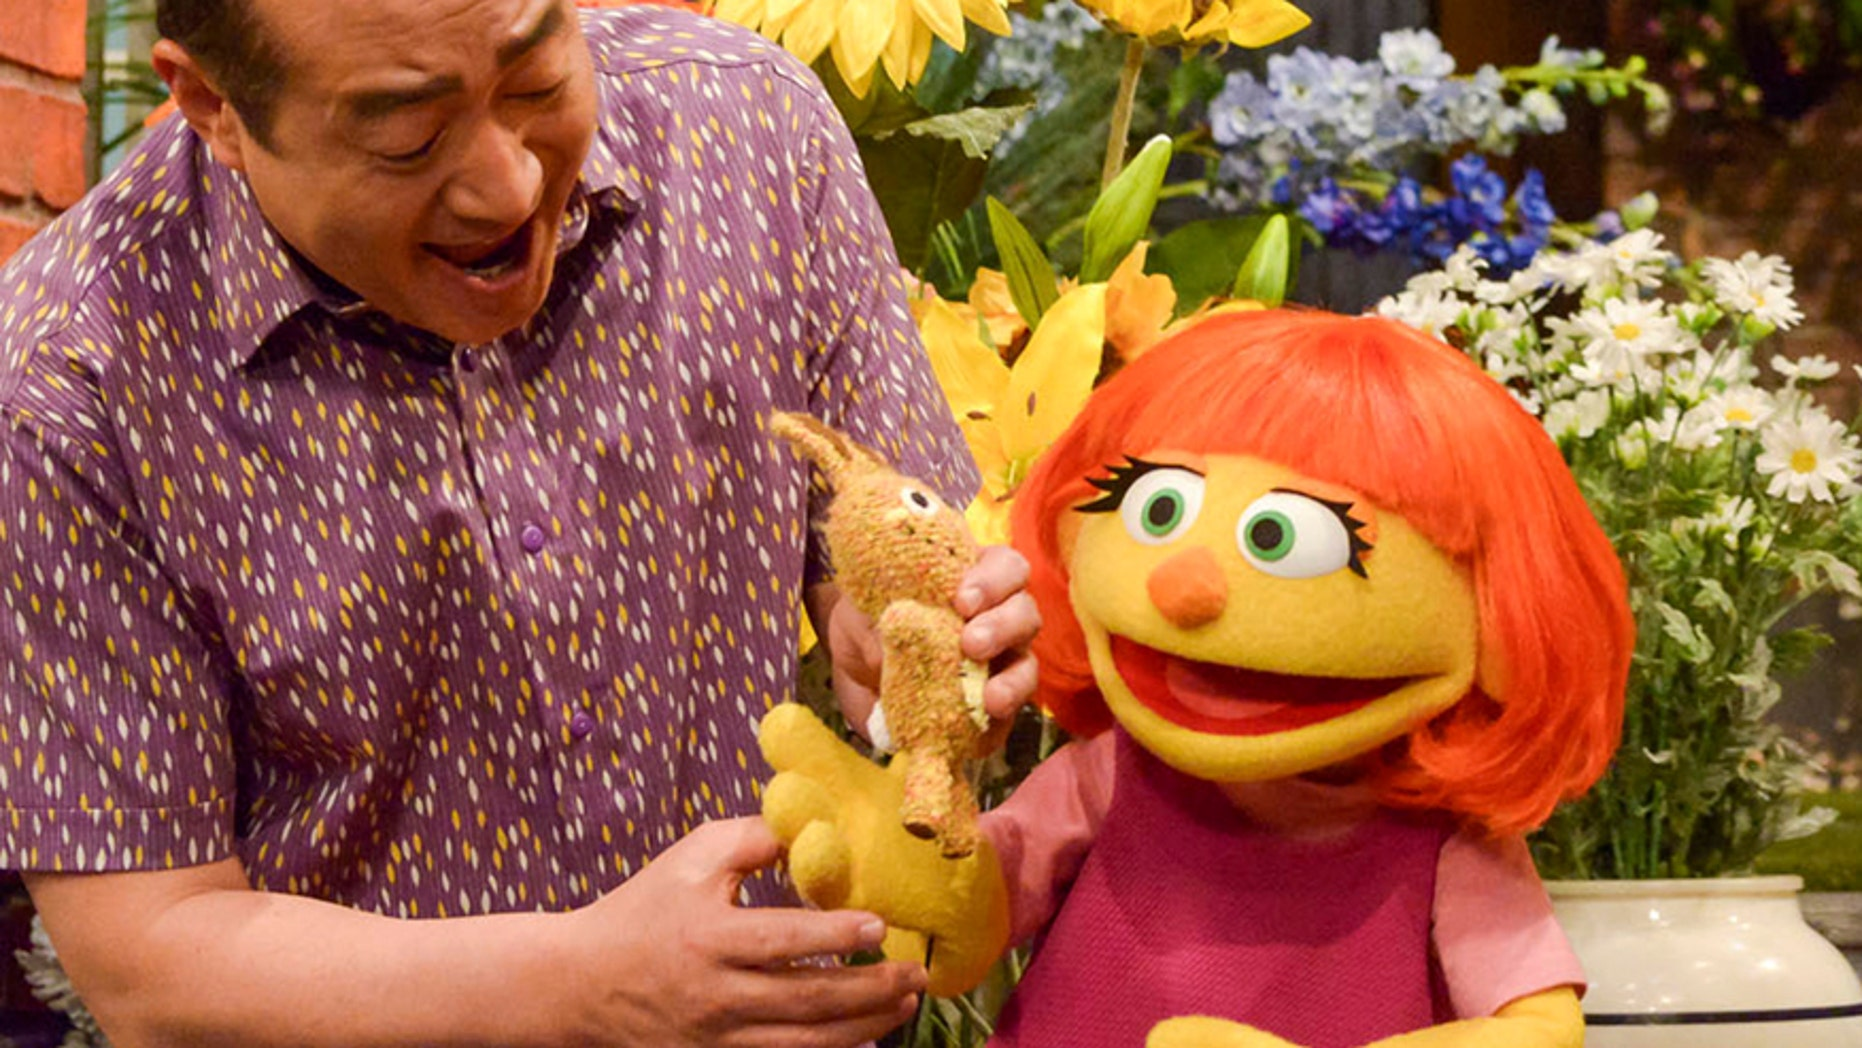 Sesame Street' to introduce Muppet with autism | Fox News